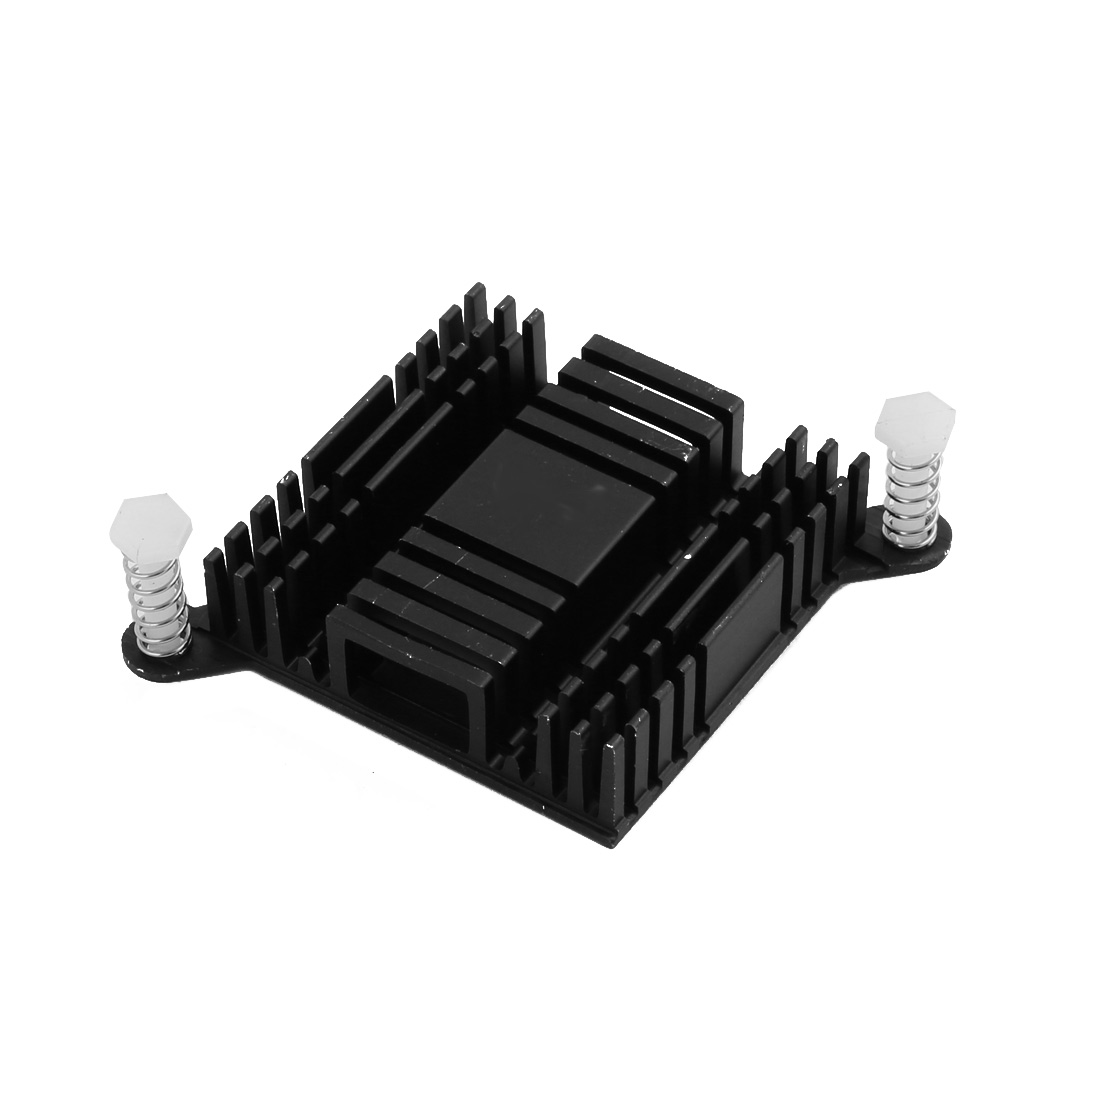 38mmx38mmx10mm Black Aluminum Heatsink Heat Diffuse Cooling Fin